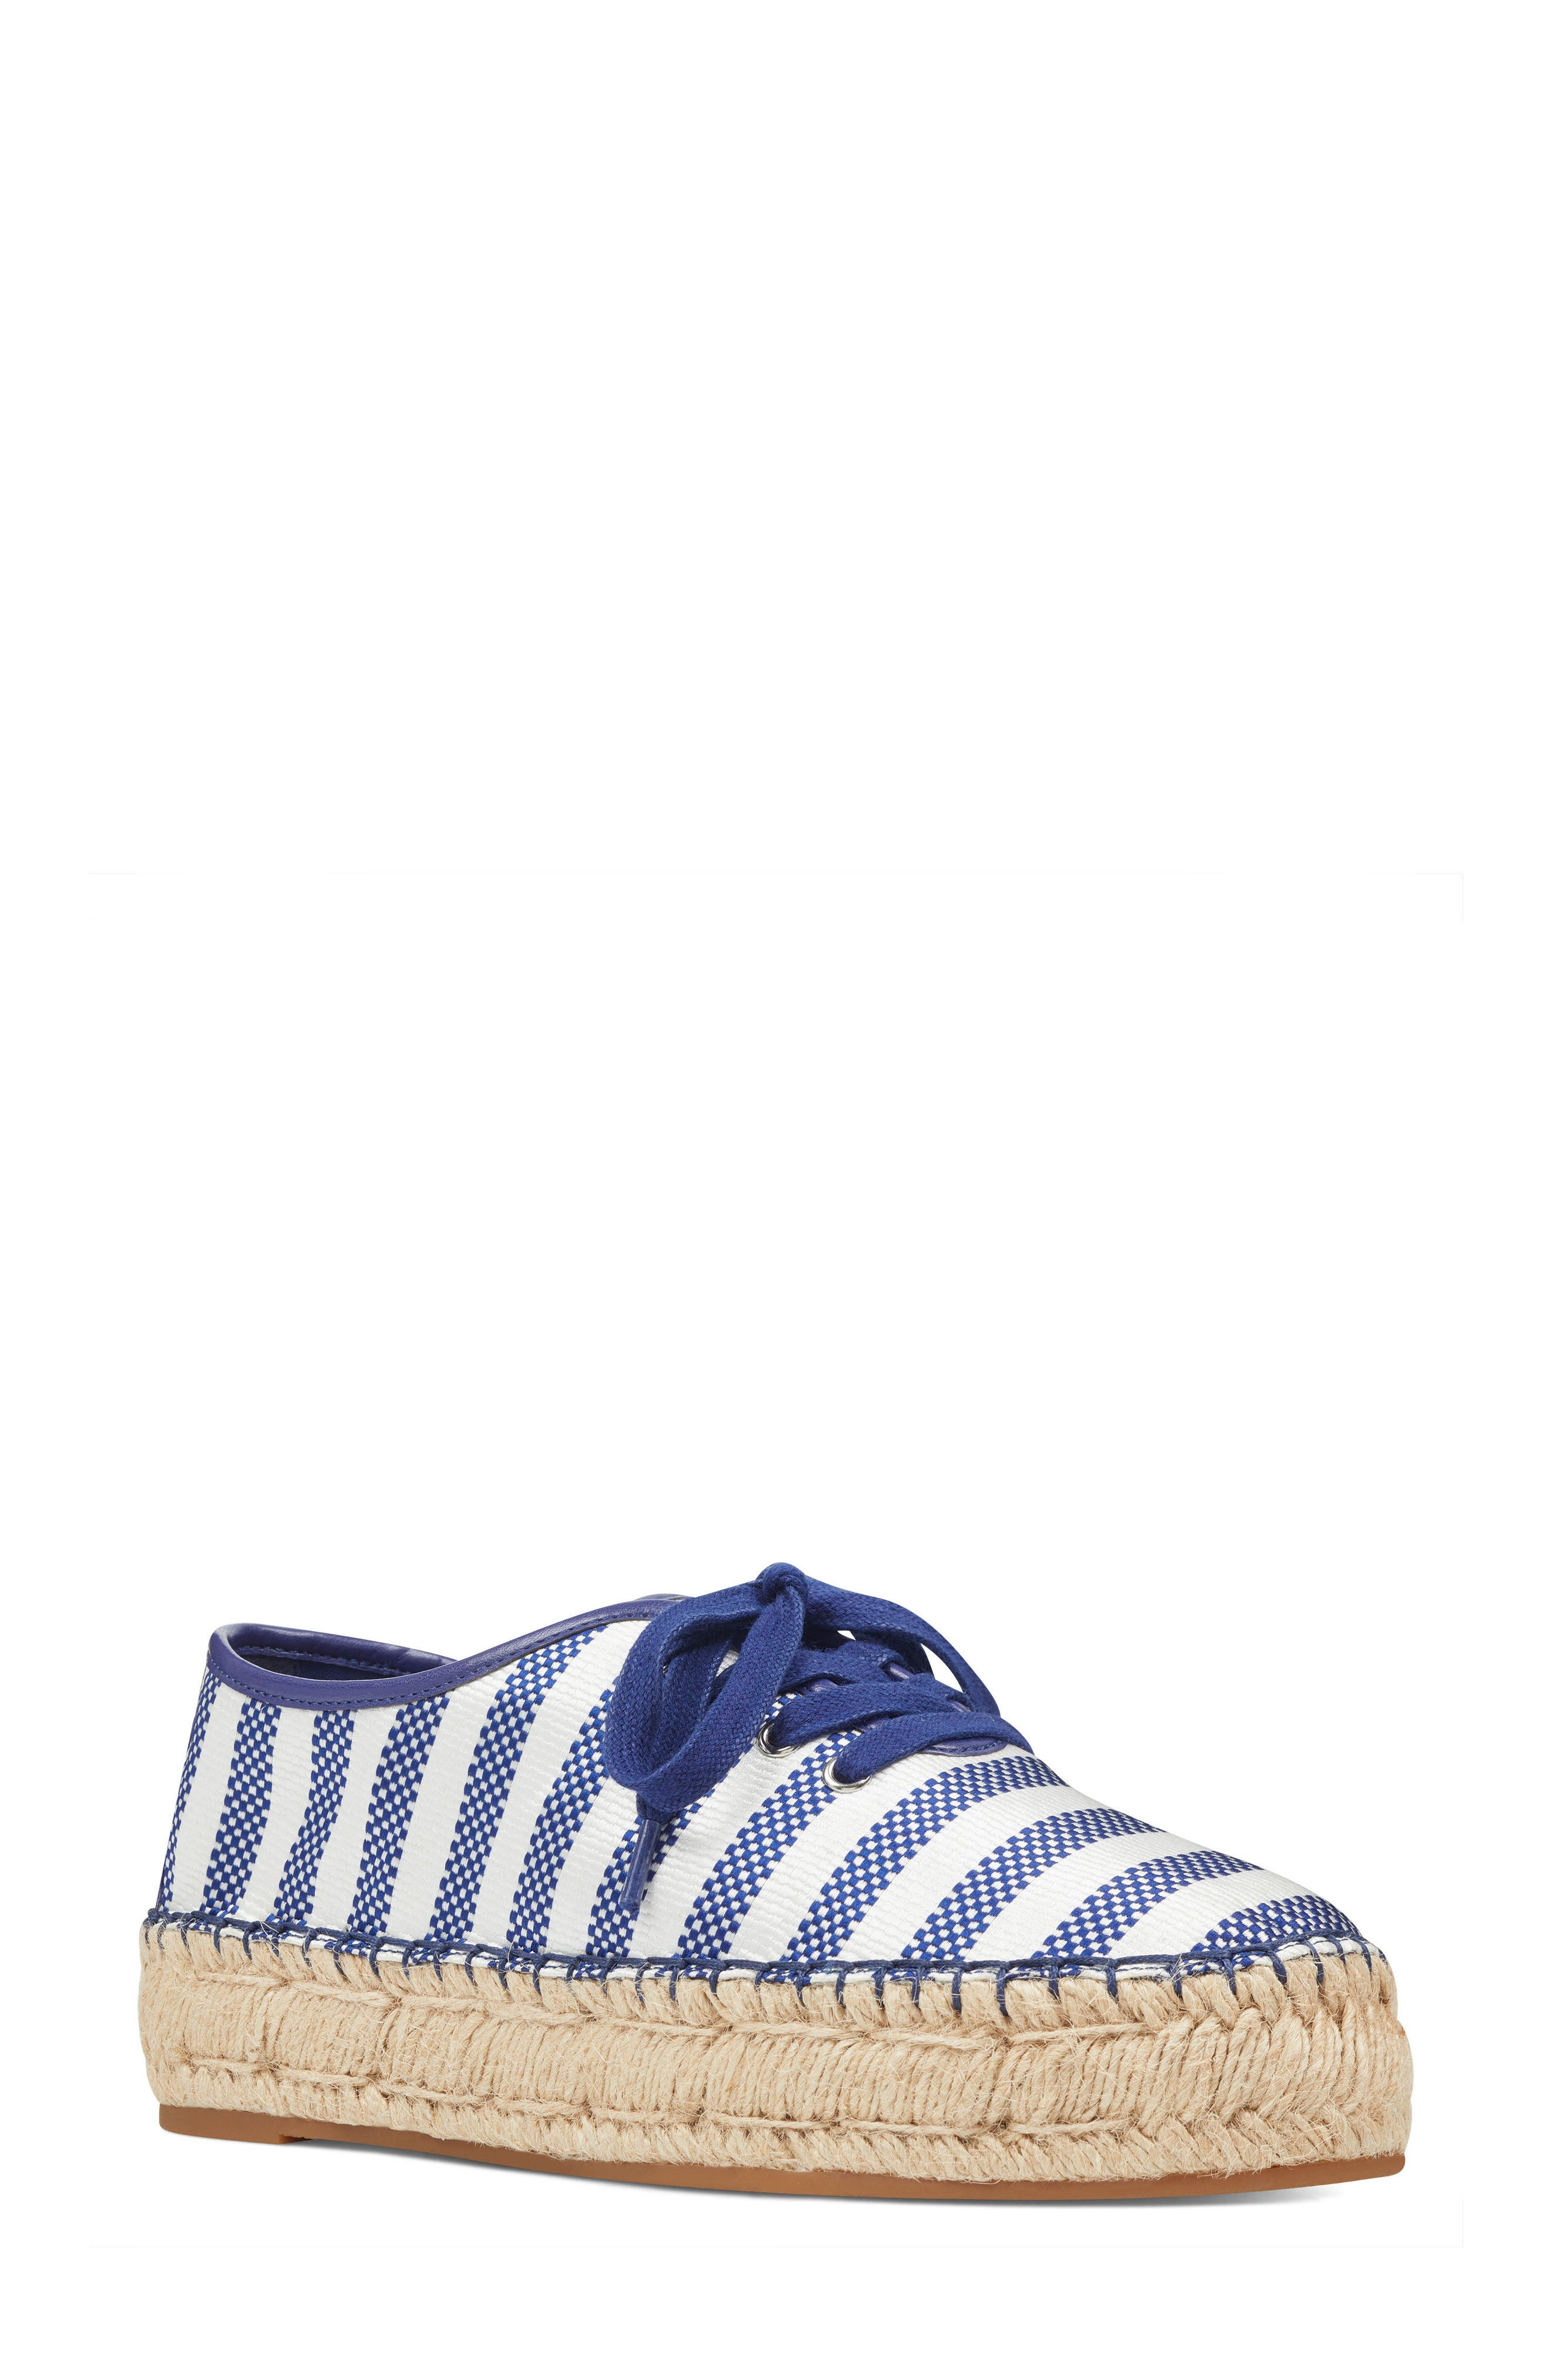 Gingerbread Espadrille Sneaker,                             Main thumbnail 1, color,                             Dark Blue/ Off White Satin